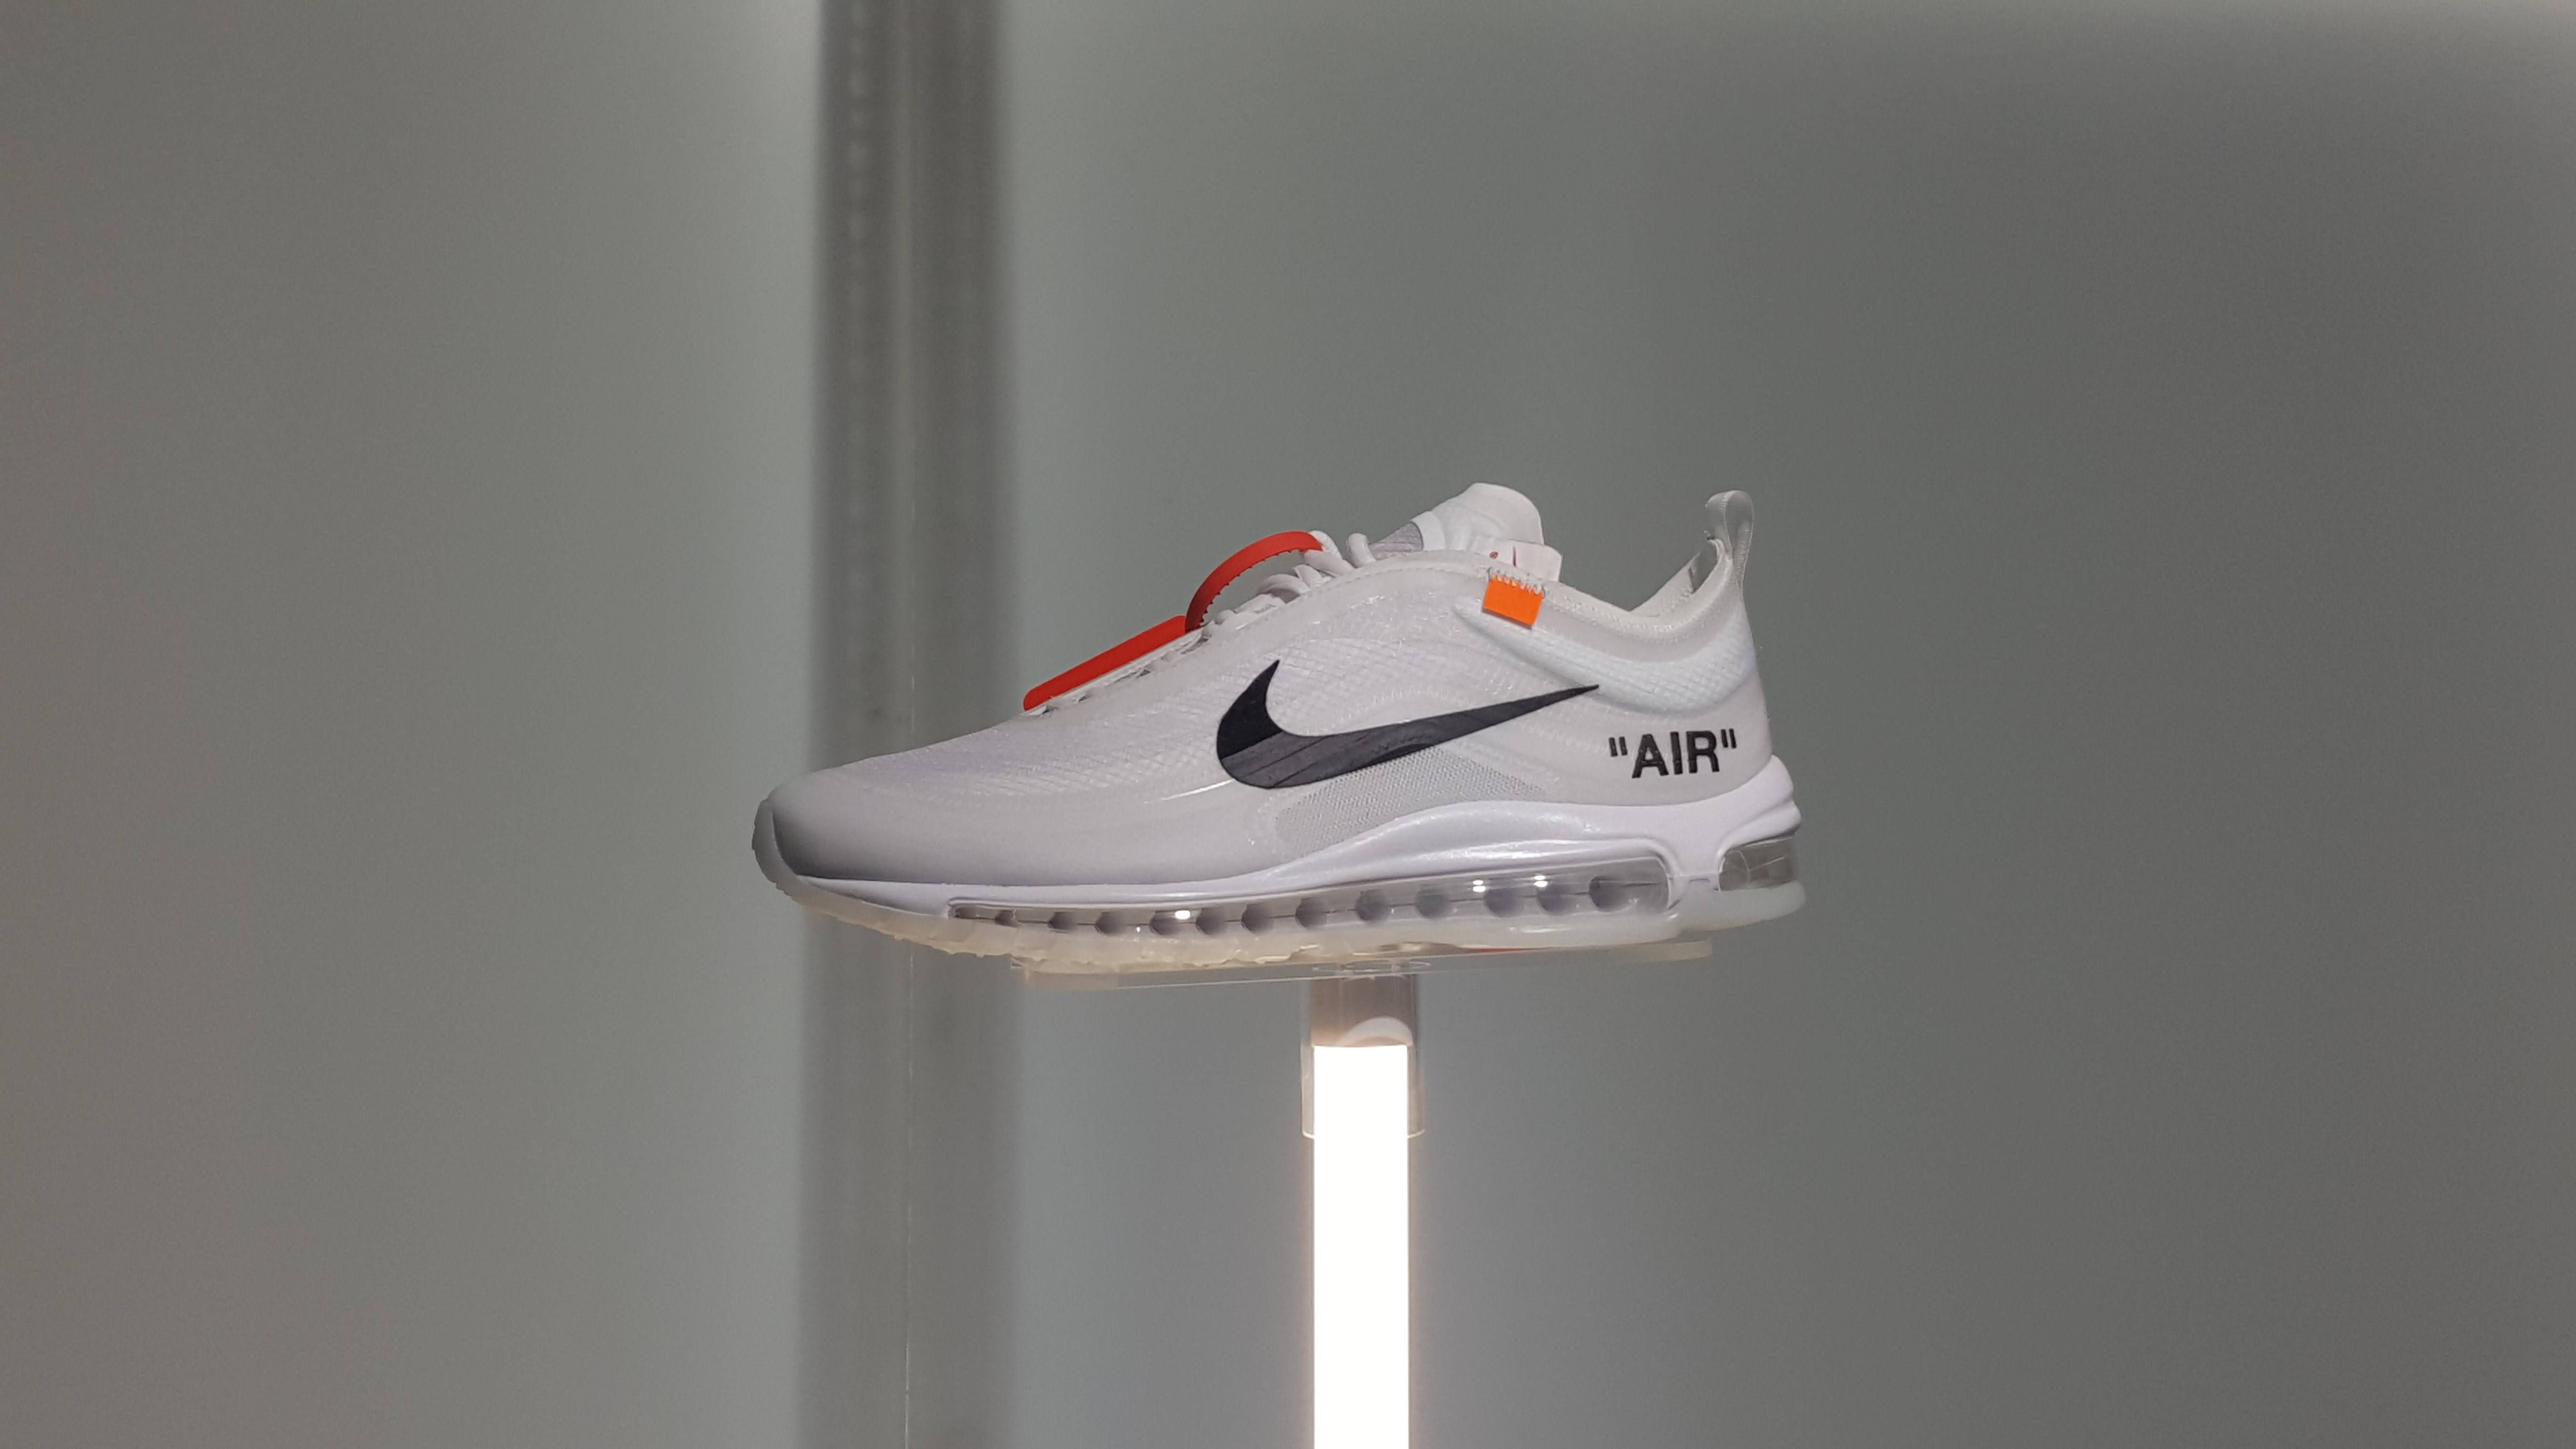 Nike/OffWhite Air Max 97 in the flesh Shoe sketches